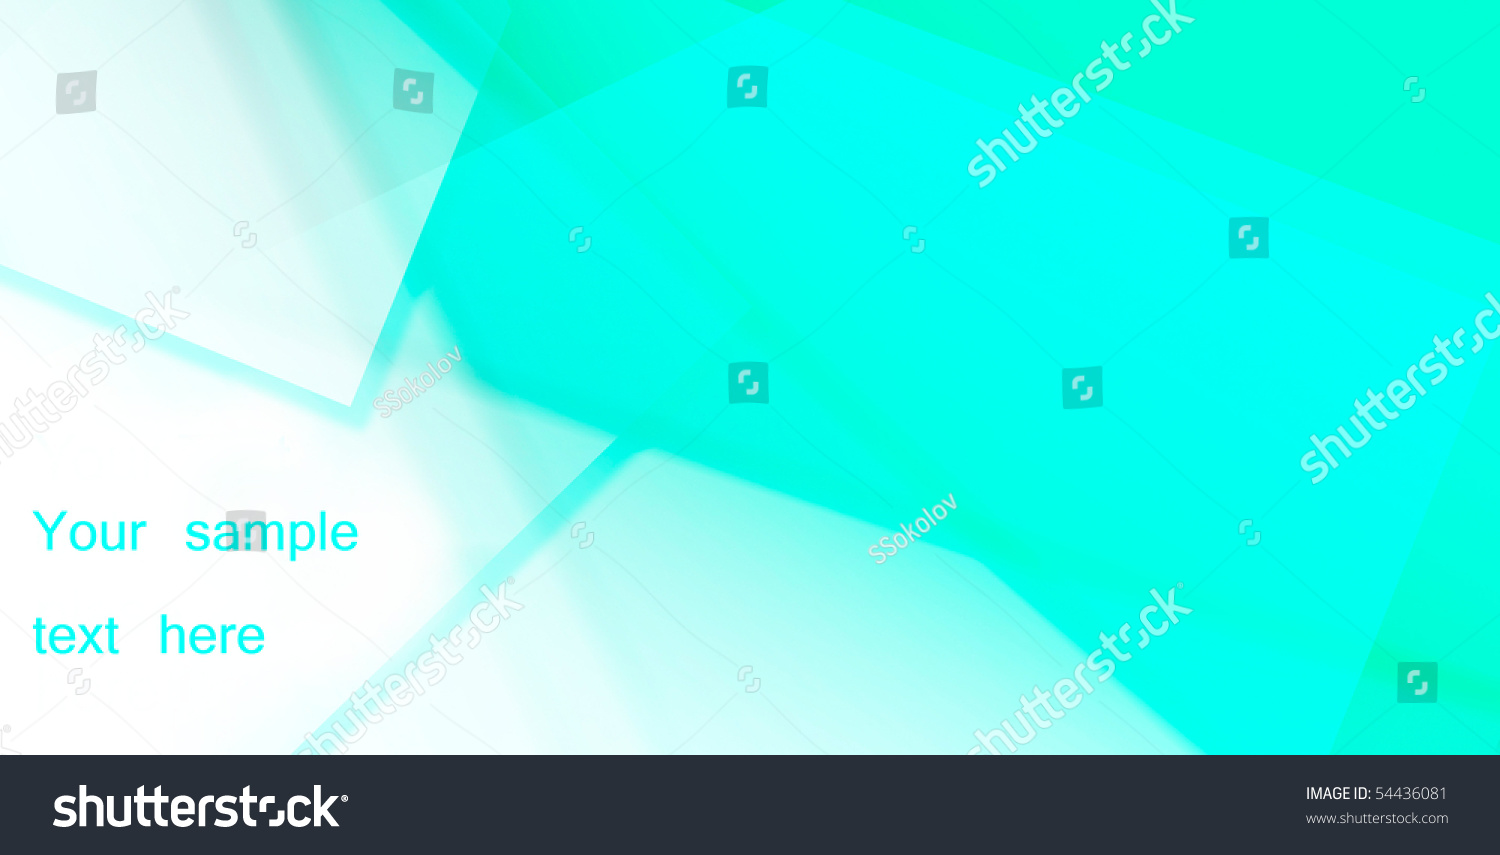 Abstract Background Image Wallpaper Visit Card Stock Illustration 54436081